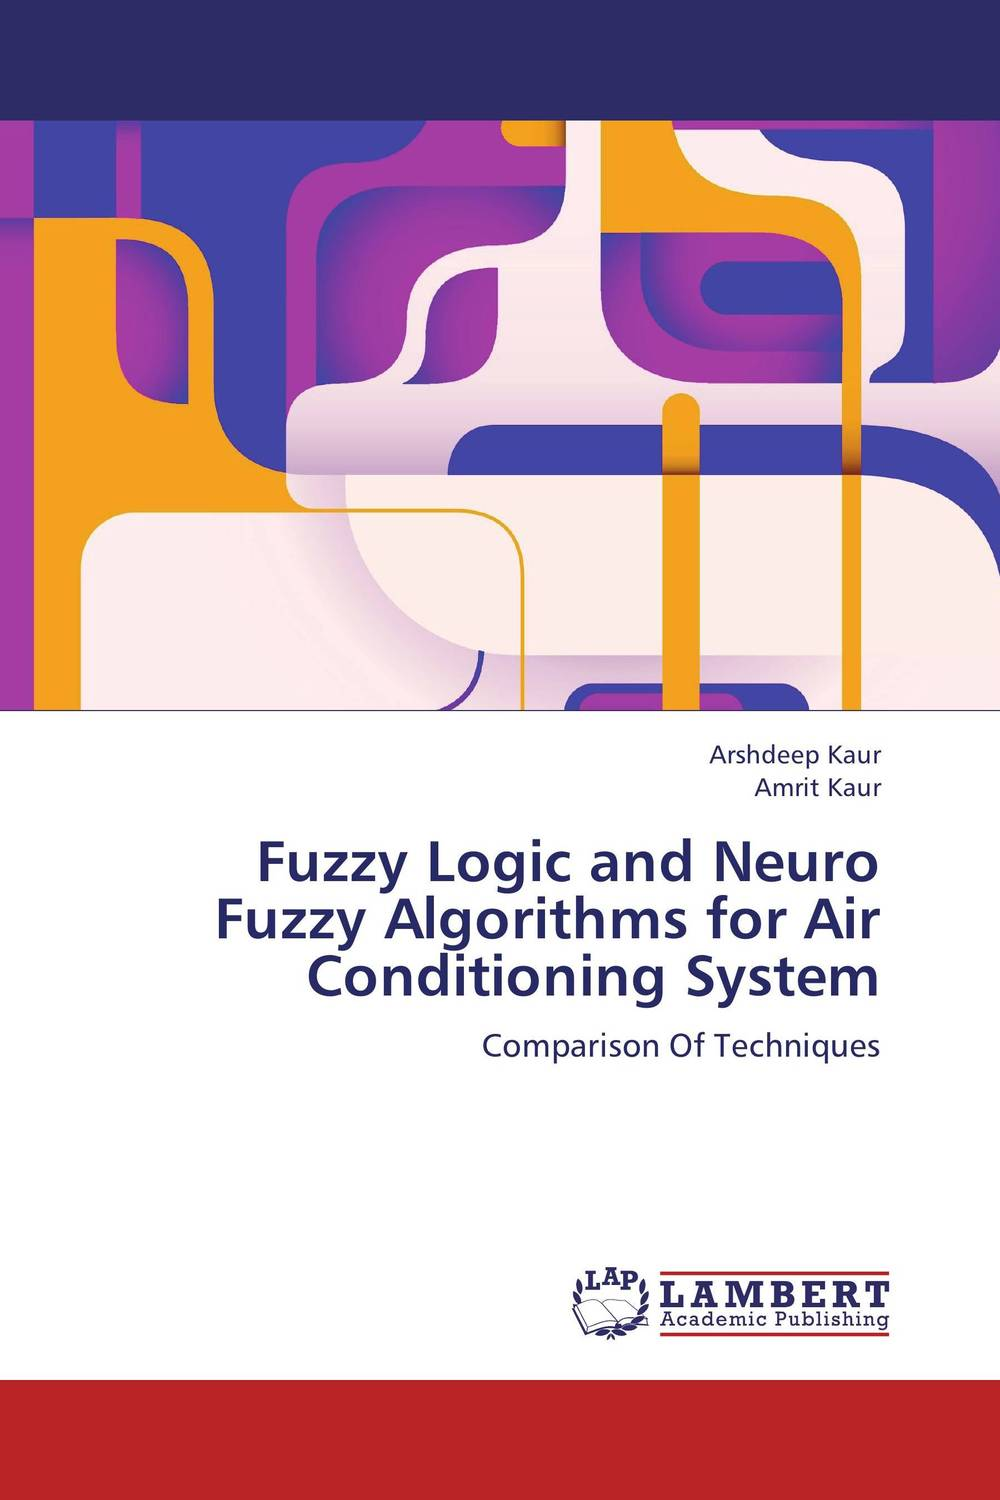 Fuzzy Logic and Neuro Fuzzy Algorithms for Air Conditioning System aygun nusrat alasgarova financial risk forecasting using neuro fuzzy approach